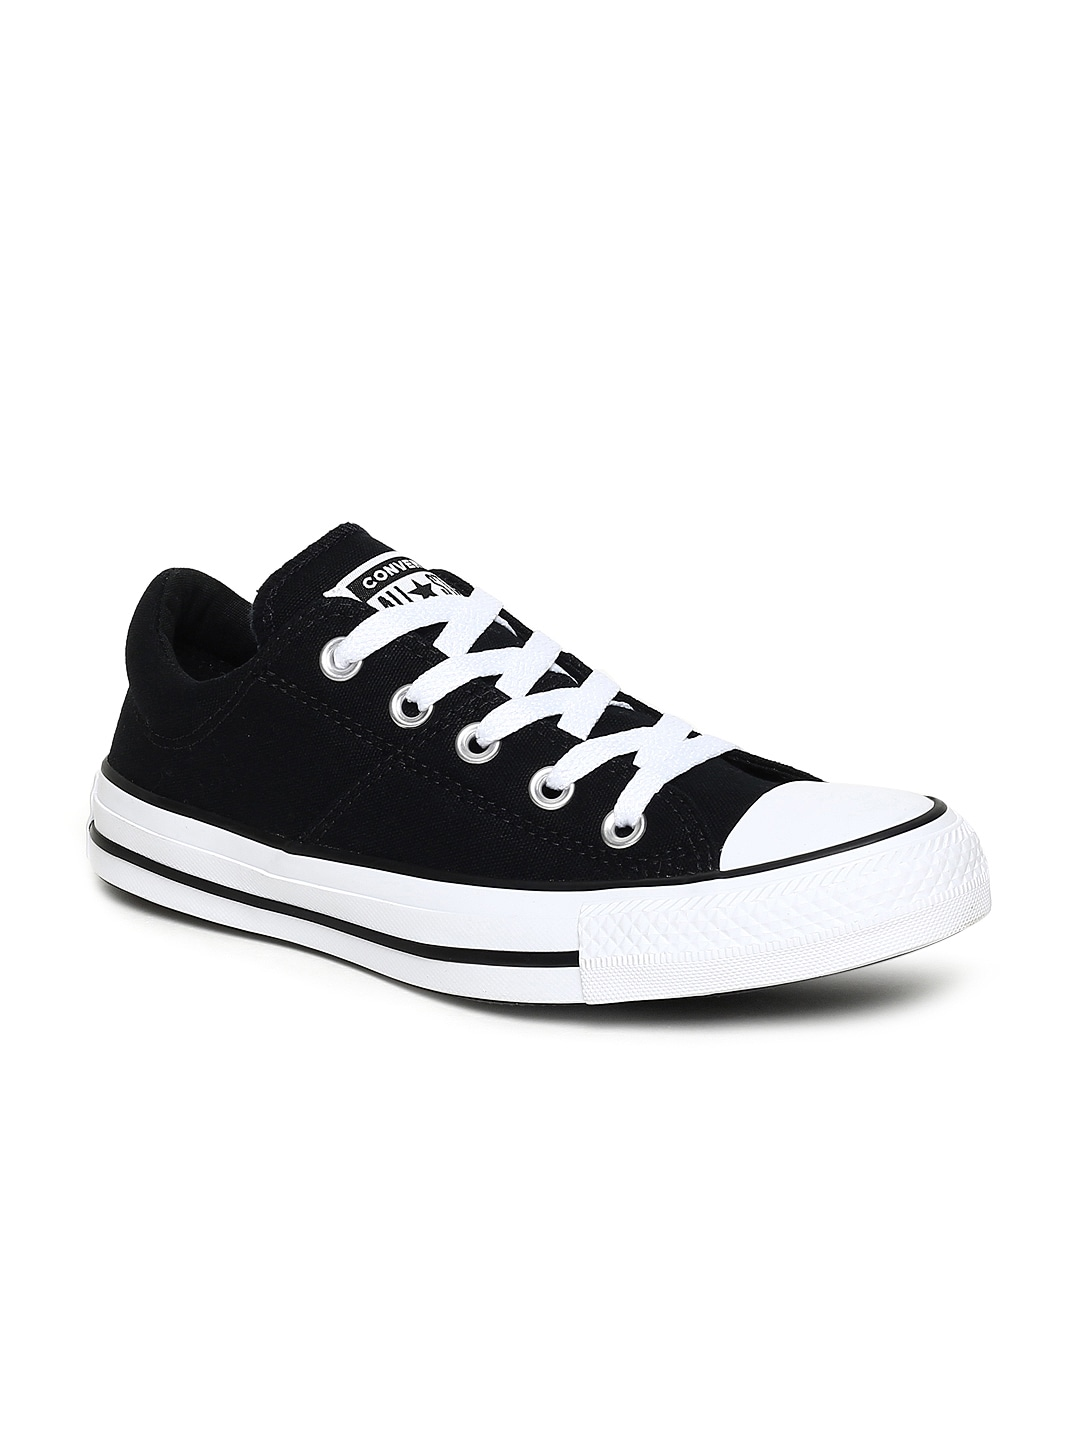 89aefdc02fee Converse Shoes - Buy Converse Canvas Shoes   Sneakers Online